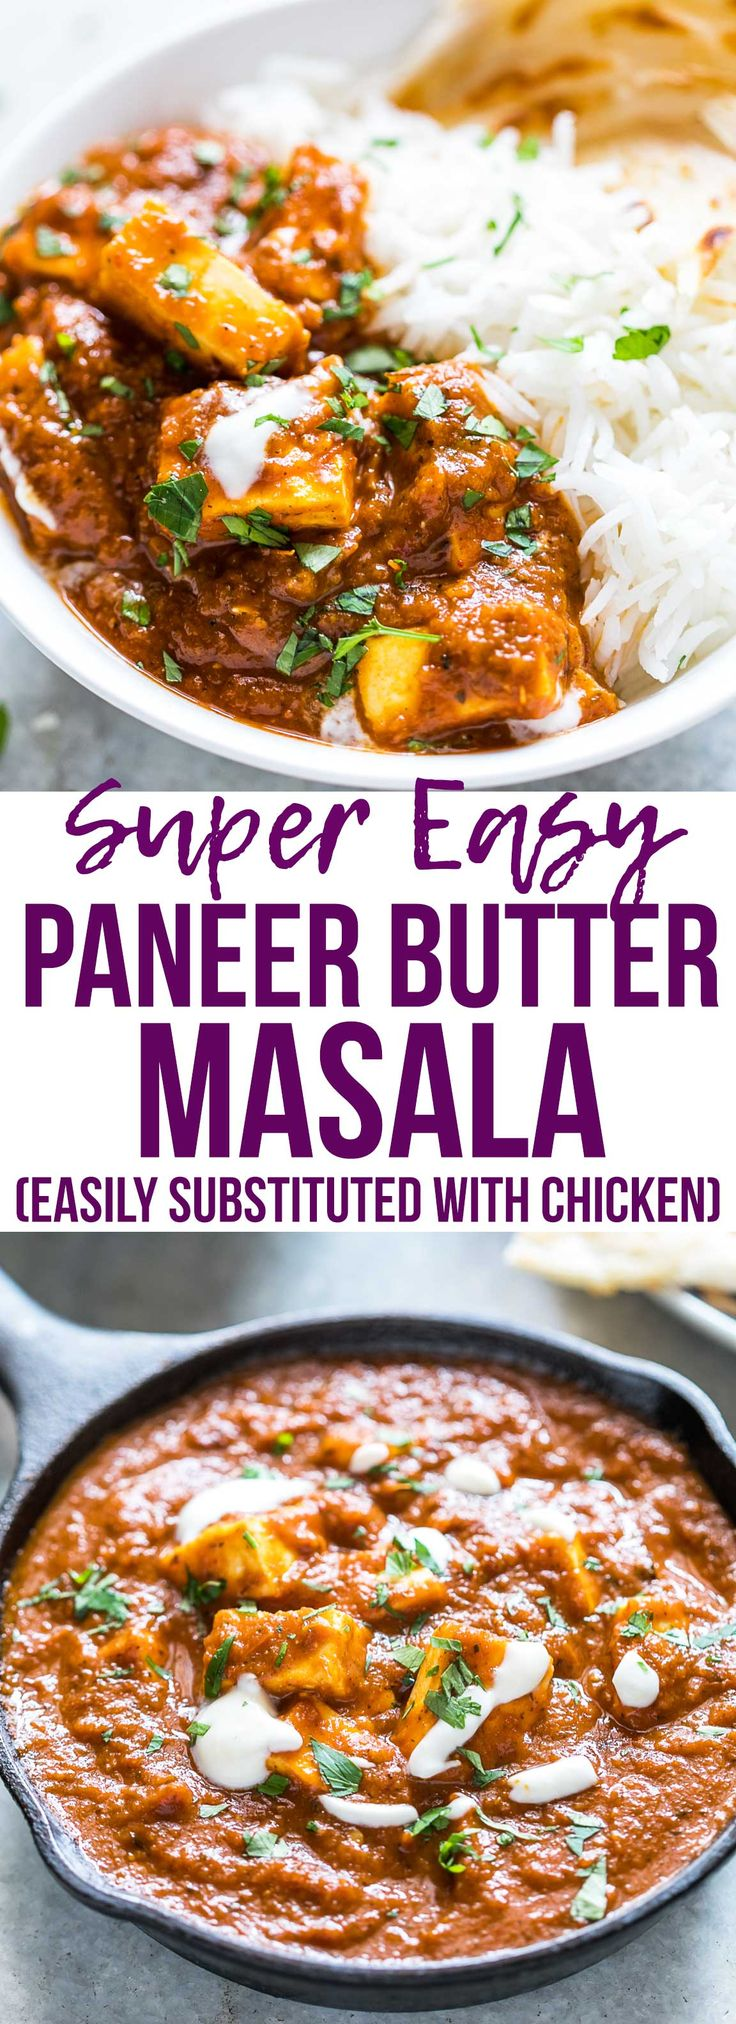 Here's an easy recipe for the perfect restaurant style paneer butter masala for all you paneer (cottage cheese) lovers! I love serving this with parathas and jeera rice. It's always a hit with family and guests! My Food Story